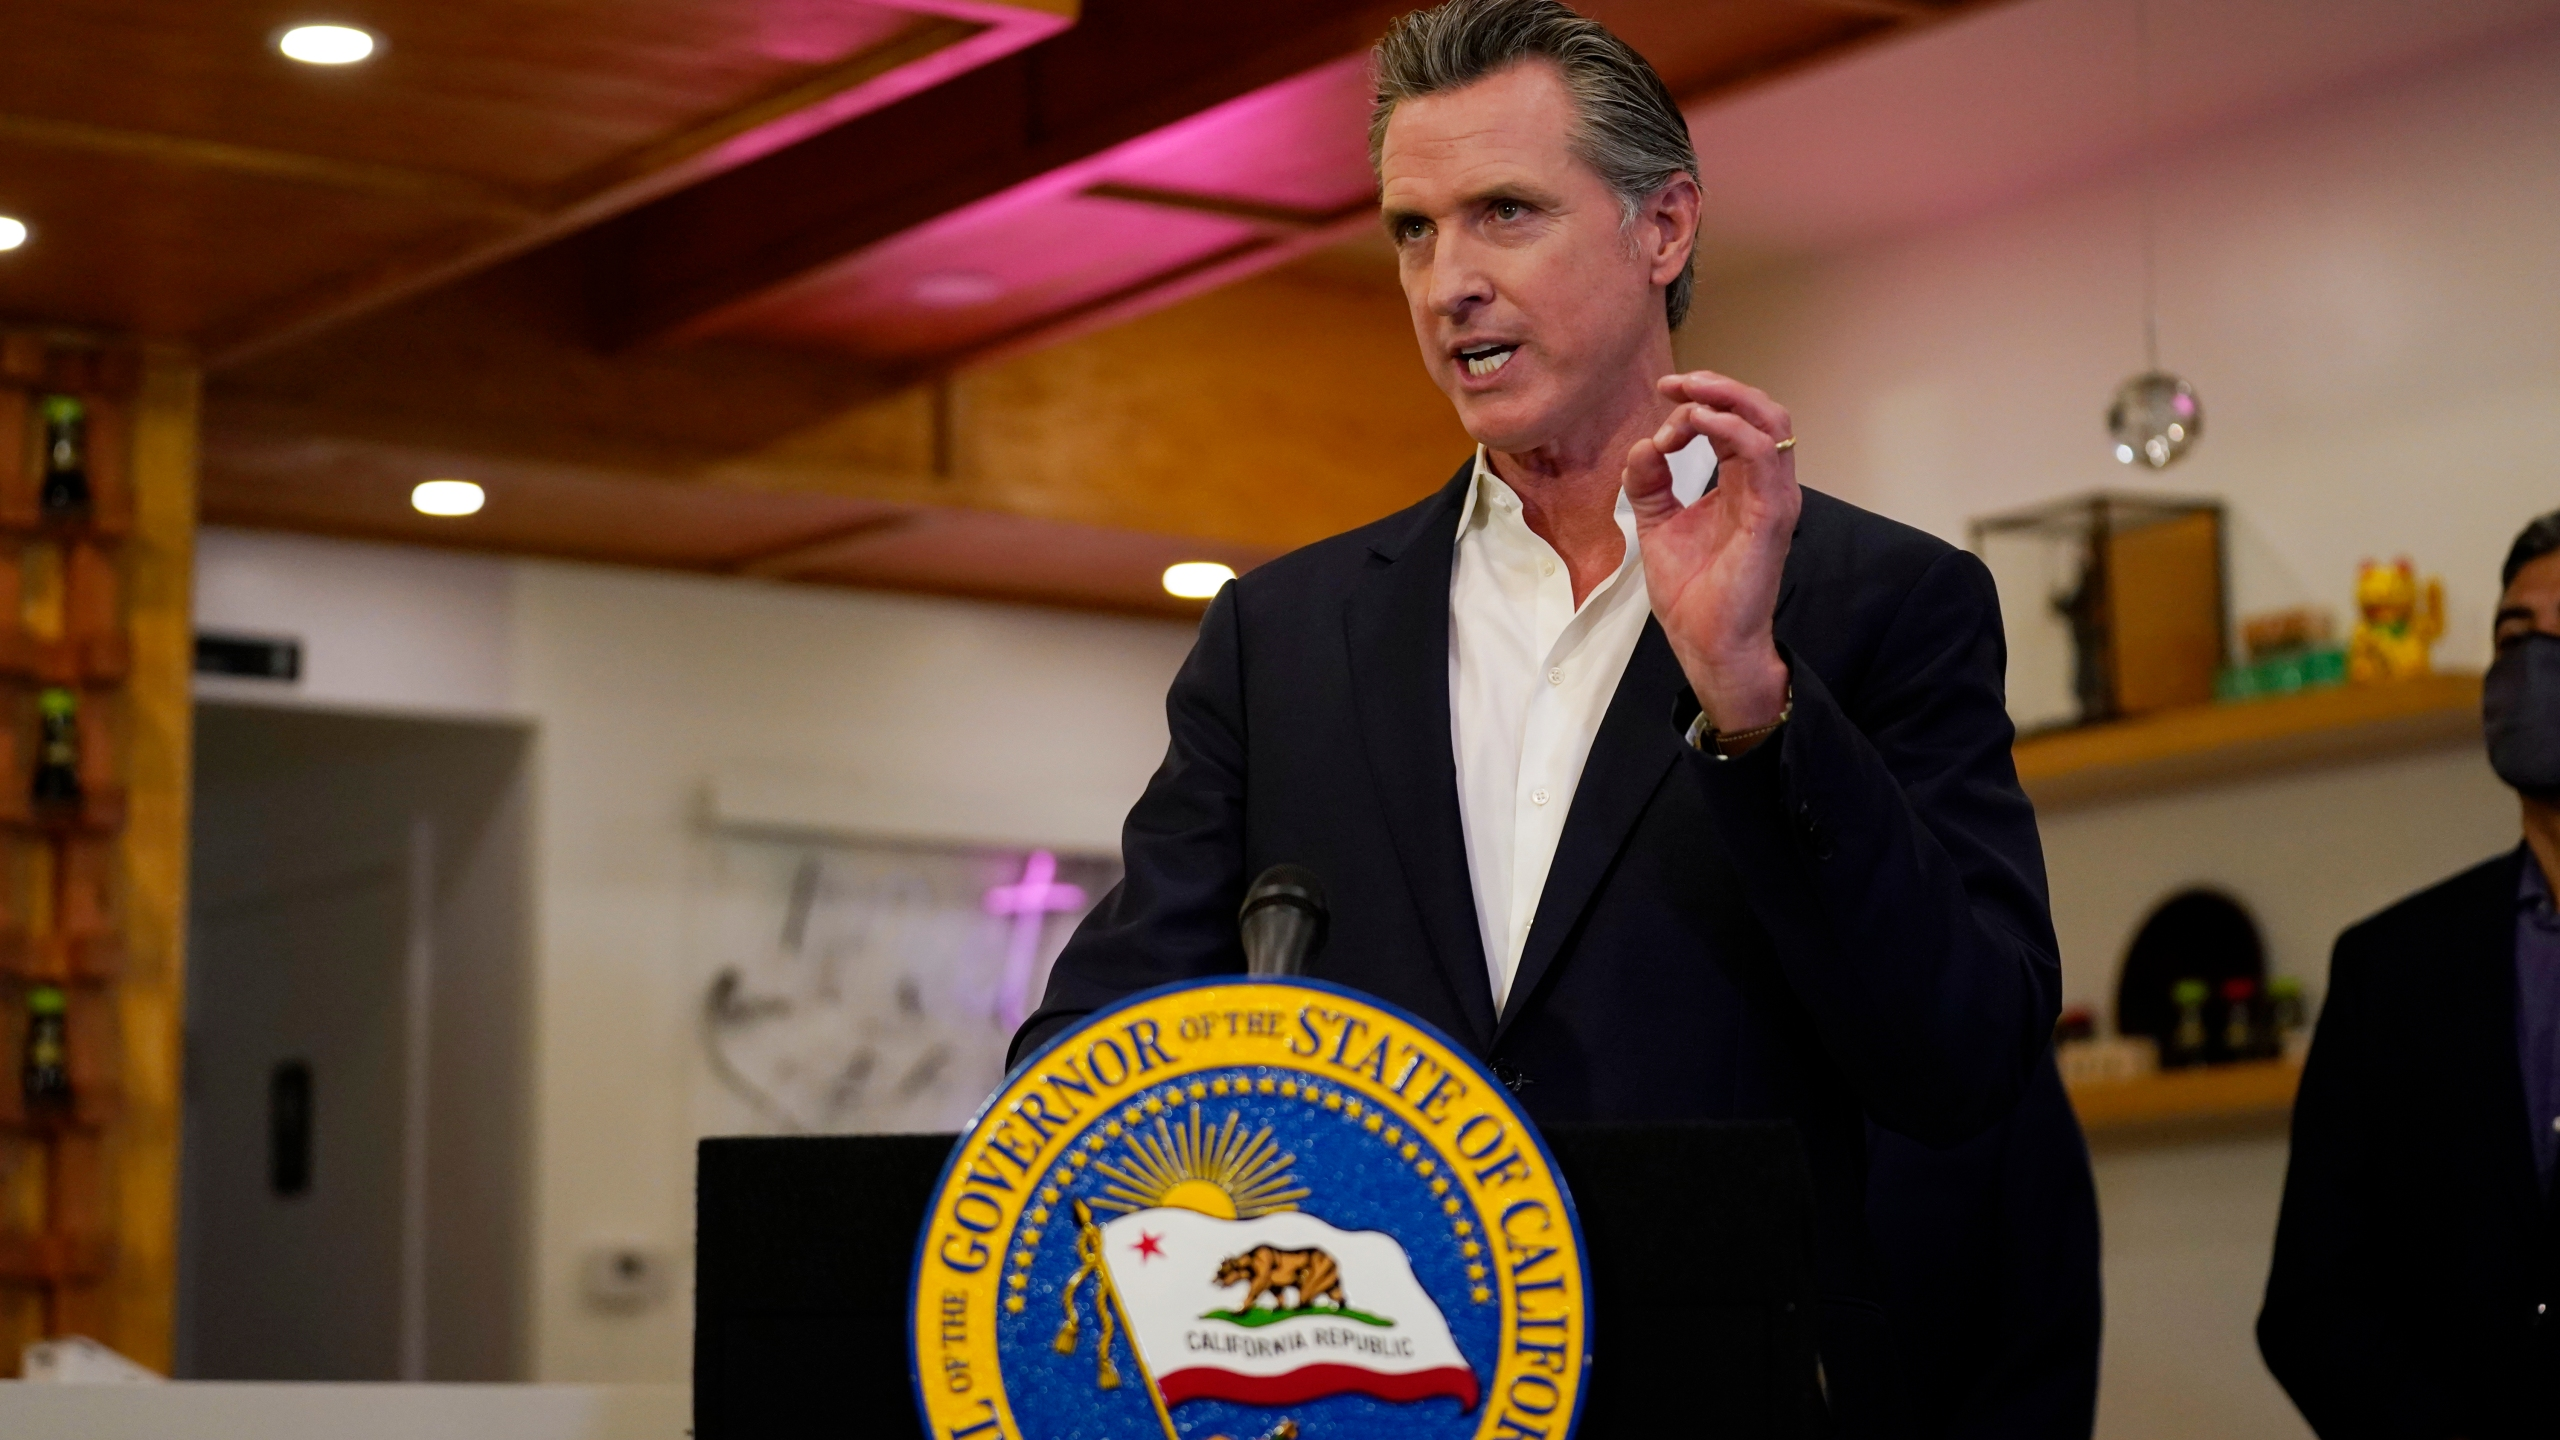 California Gov. Gavin Newsom speaks at Hanzo Sushi Thursday, April 29, 2021, in San Fernando, Calif. Businesses could be spared billions of dollars of higher taxes in coming years as a result of federal coronavirus relief funds flowing to the states. Newsom announced a budget plan this spring that would use $1.1 billion from the latest federal COVID-19 relief law to bolster a depleted unemployment compensation accounts. (AP Photo/Marcio Jose Sanchez, file)